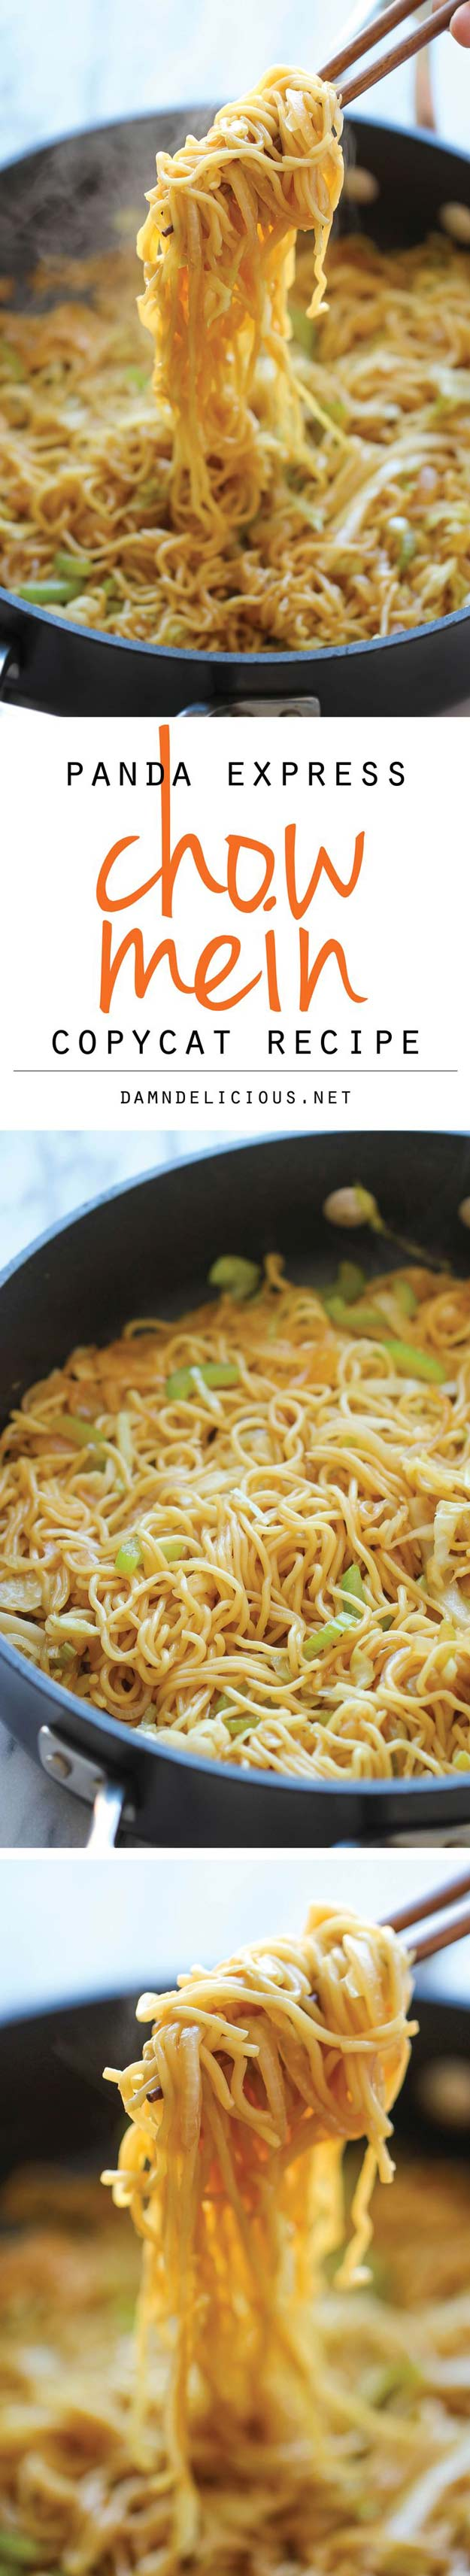 Copycat Recipes From Top Restaurants. Best Recipe Knockoffs from Chipotle, Starbucks, Olive Garden, Cinabbon, Cracker Barrel, Taco Bell, Cheesecake Factory, KFC, Mc Donalds, Red Lobster, Panda Express | Panda Express Chow Mein Copycat | #recipes #copycatrecipes